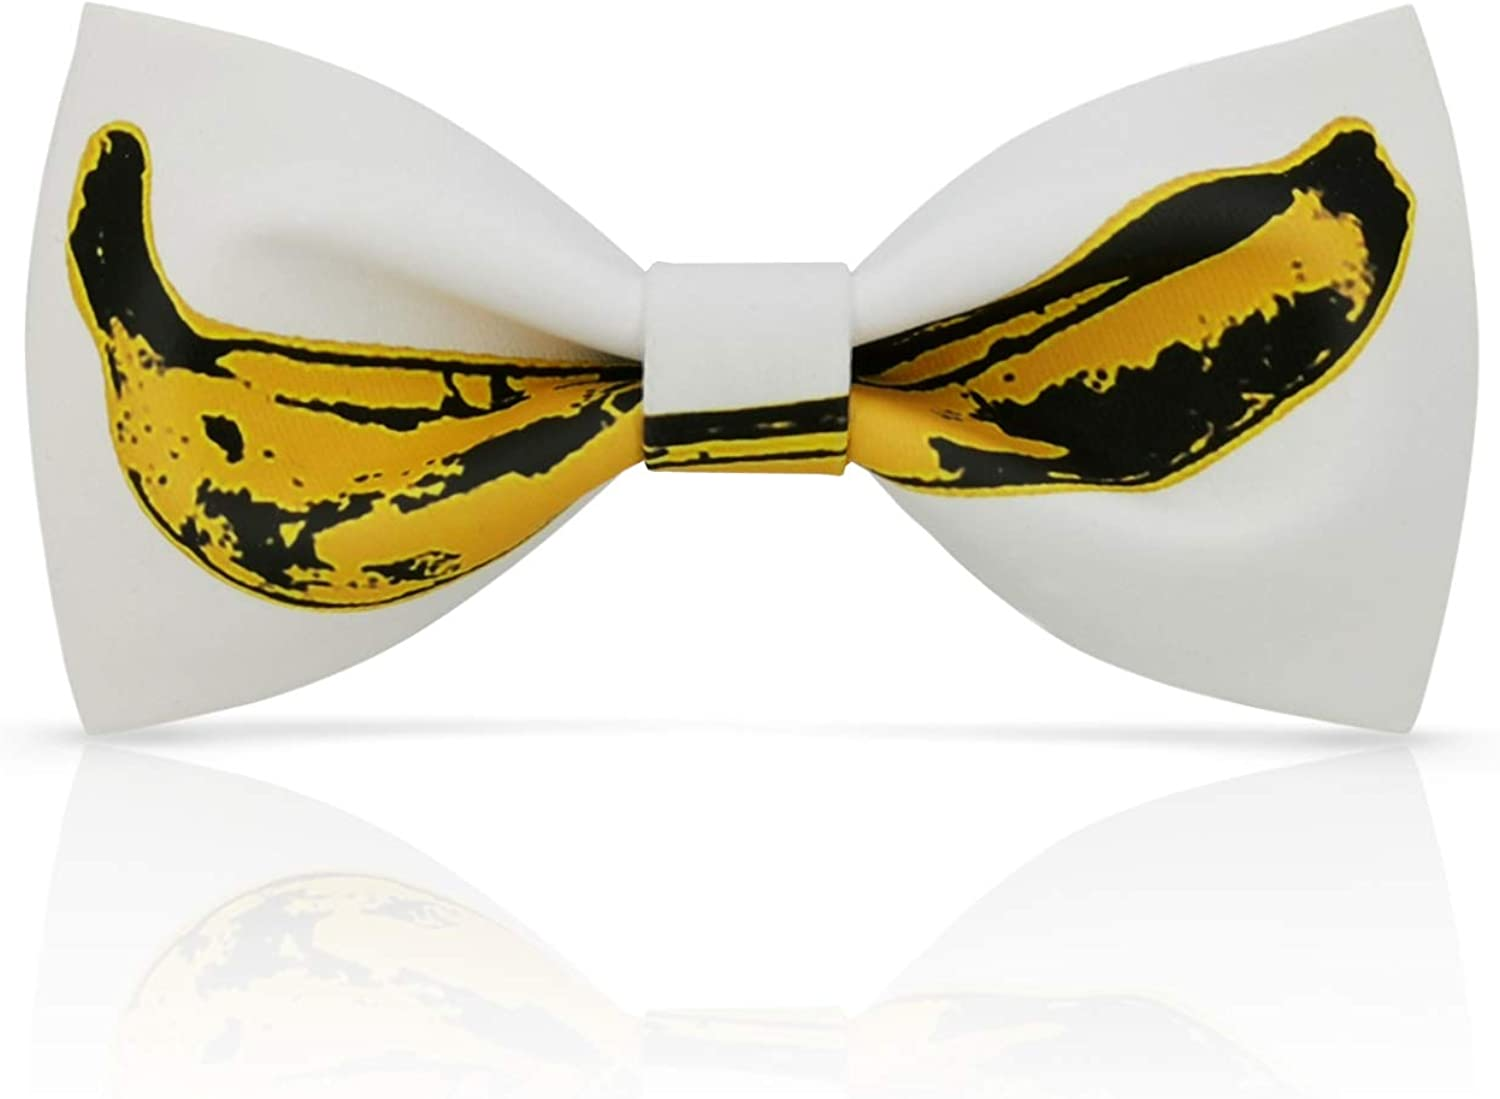 Lanzonia Designer Novelty Bowtie Mens Bow Tie for Party Holiday Ball Wedding